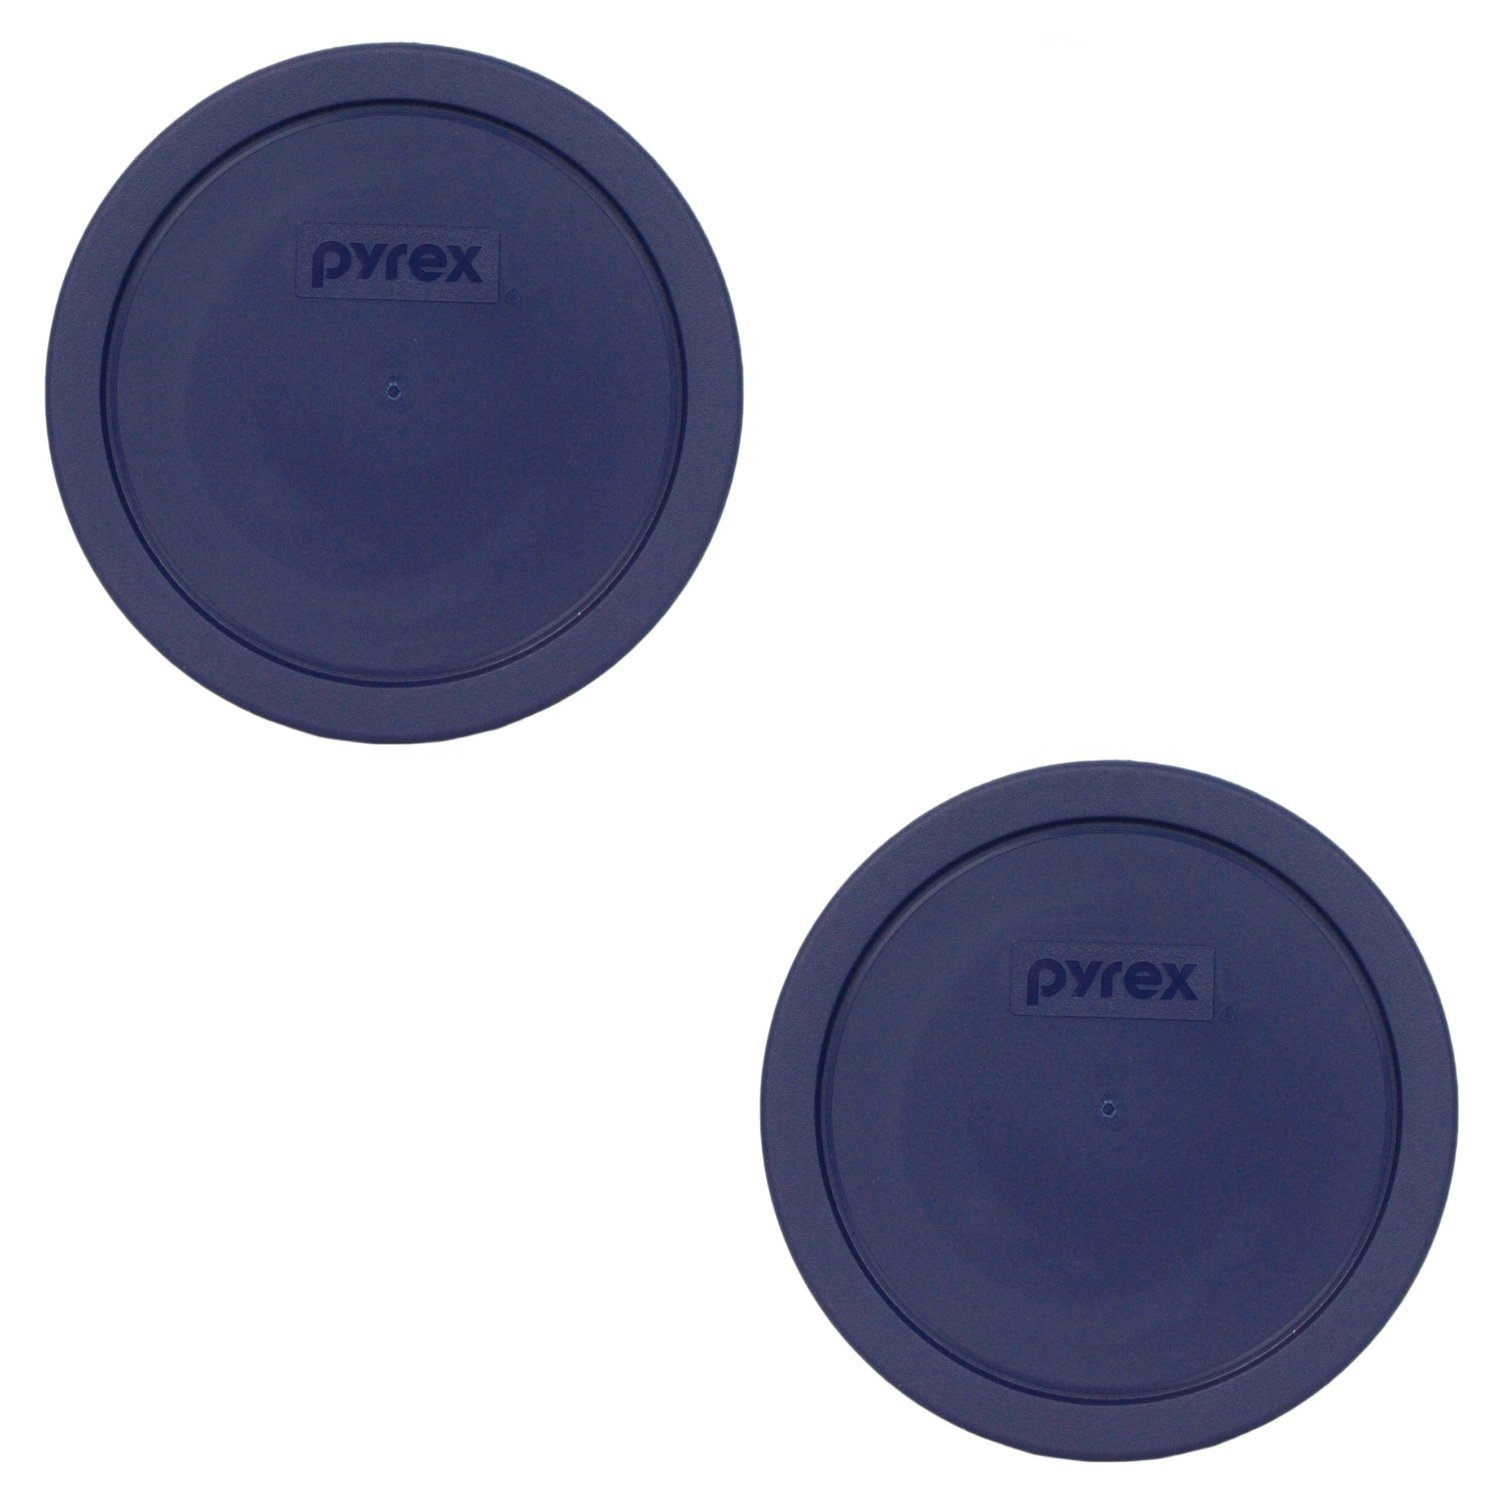 Pyrex Blue 3 Cup Round Storage Cover #7401-PC for Glass Bowls 2-Pack